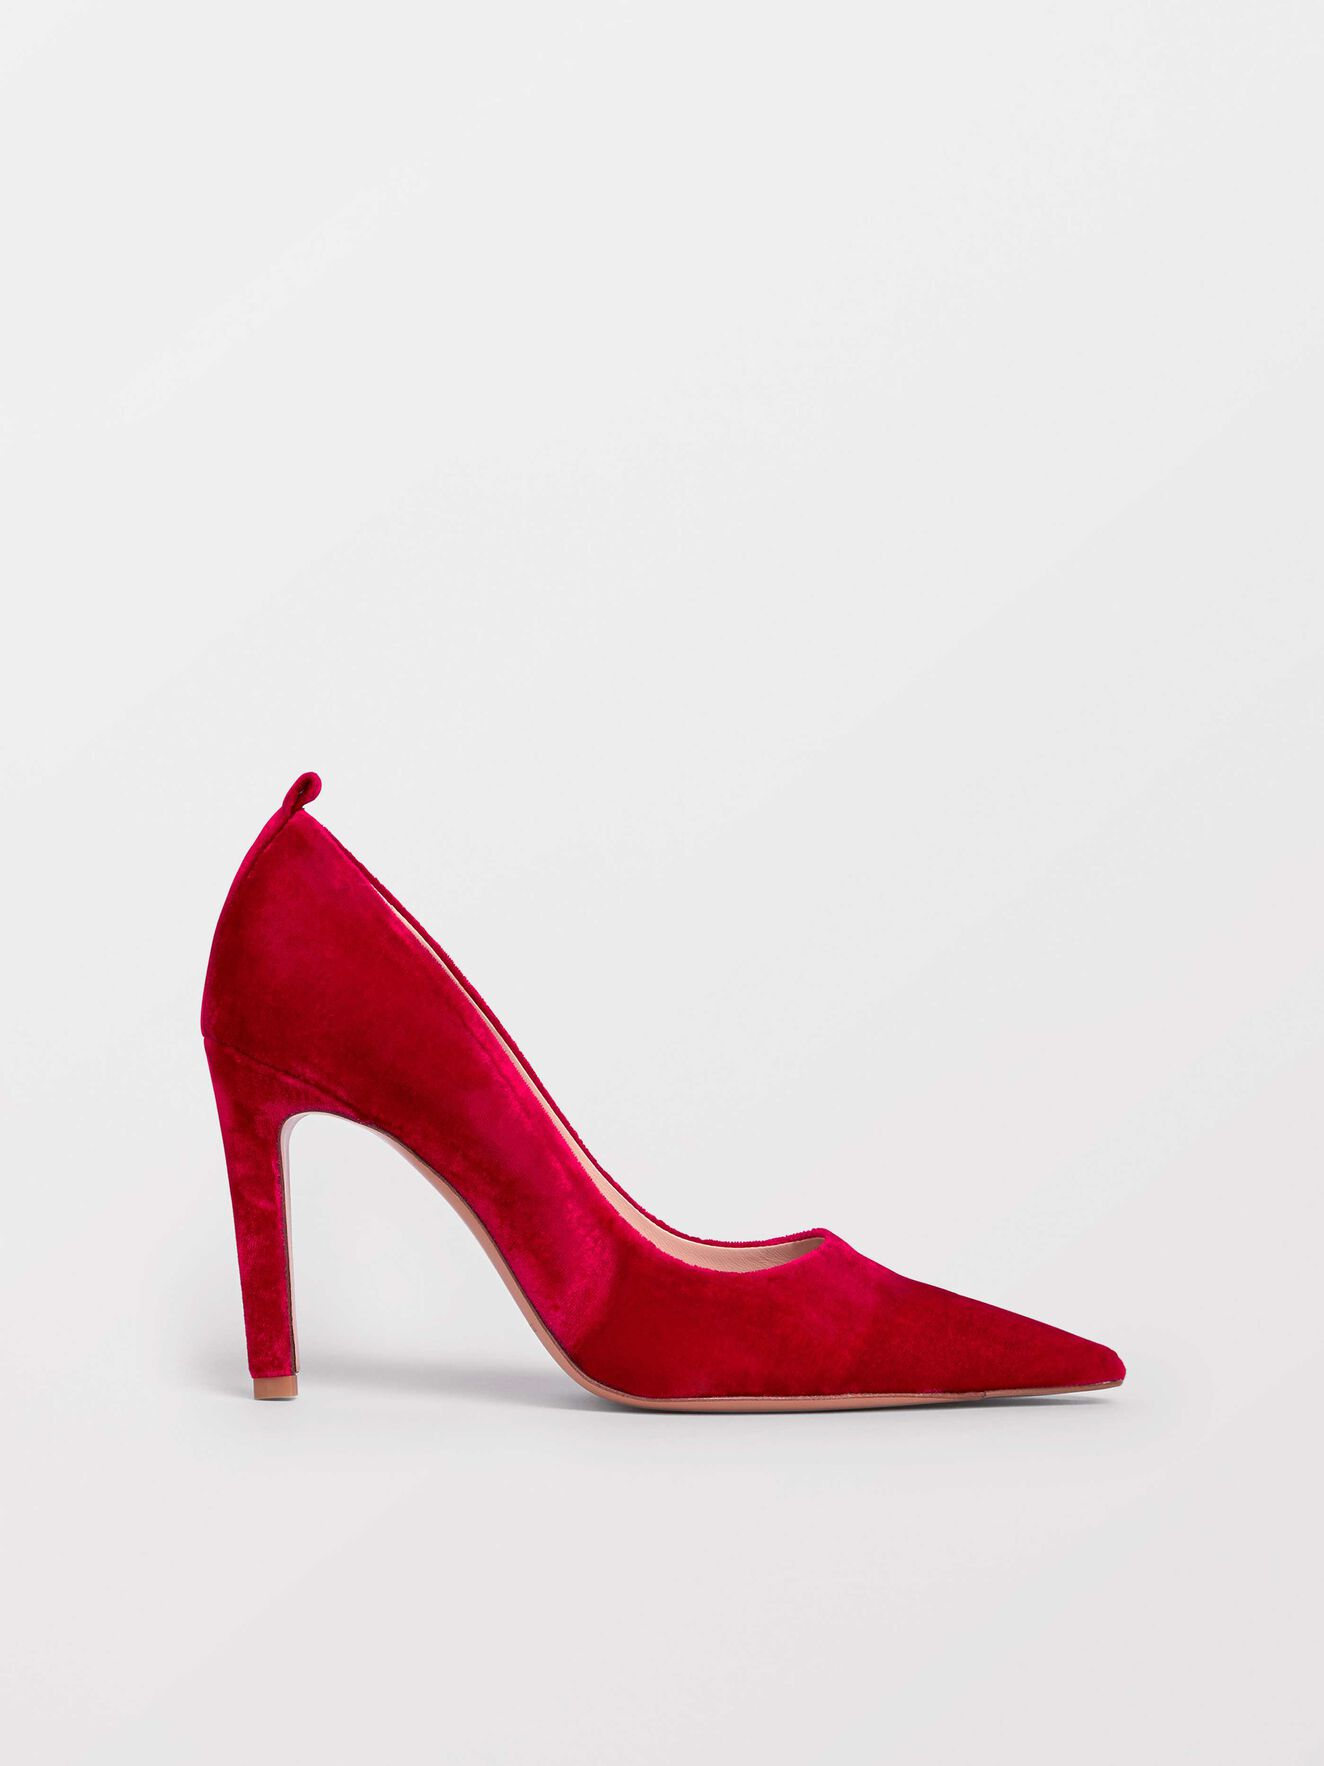 Capensis V Pumps in Flame Red from Tiger of Sweden